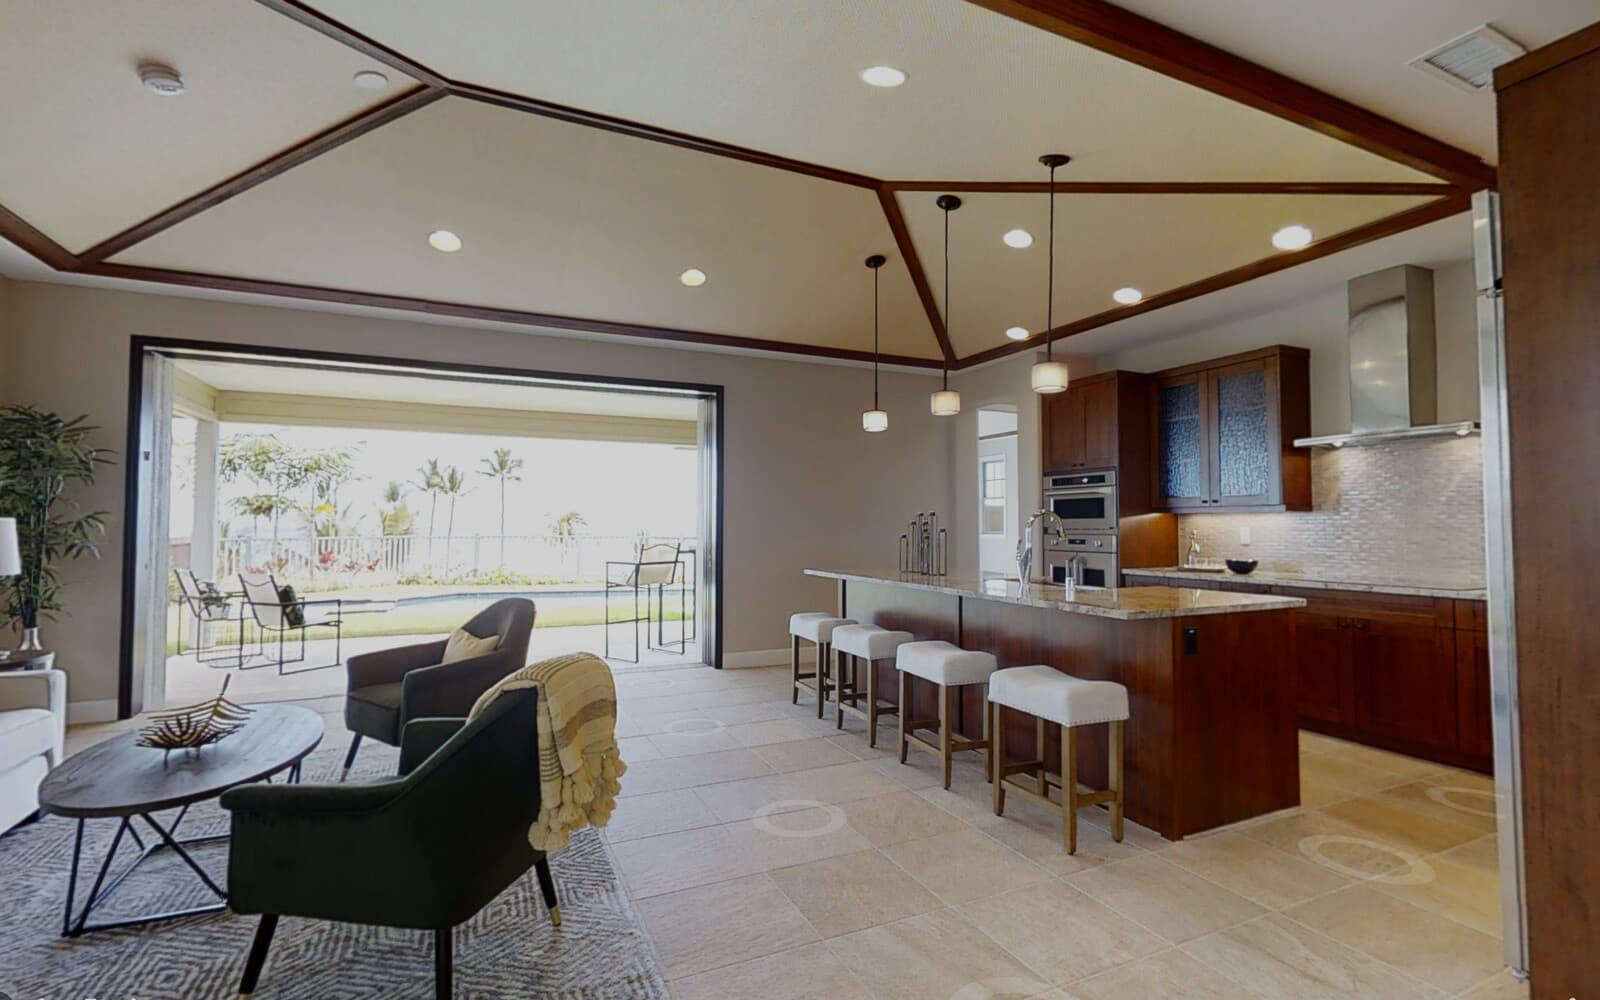 1 honu plan 2 home 18 virtual tour holua kai at keauhou